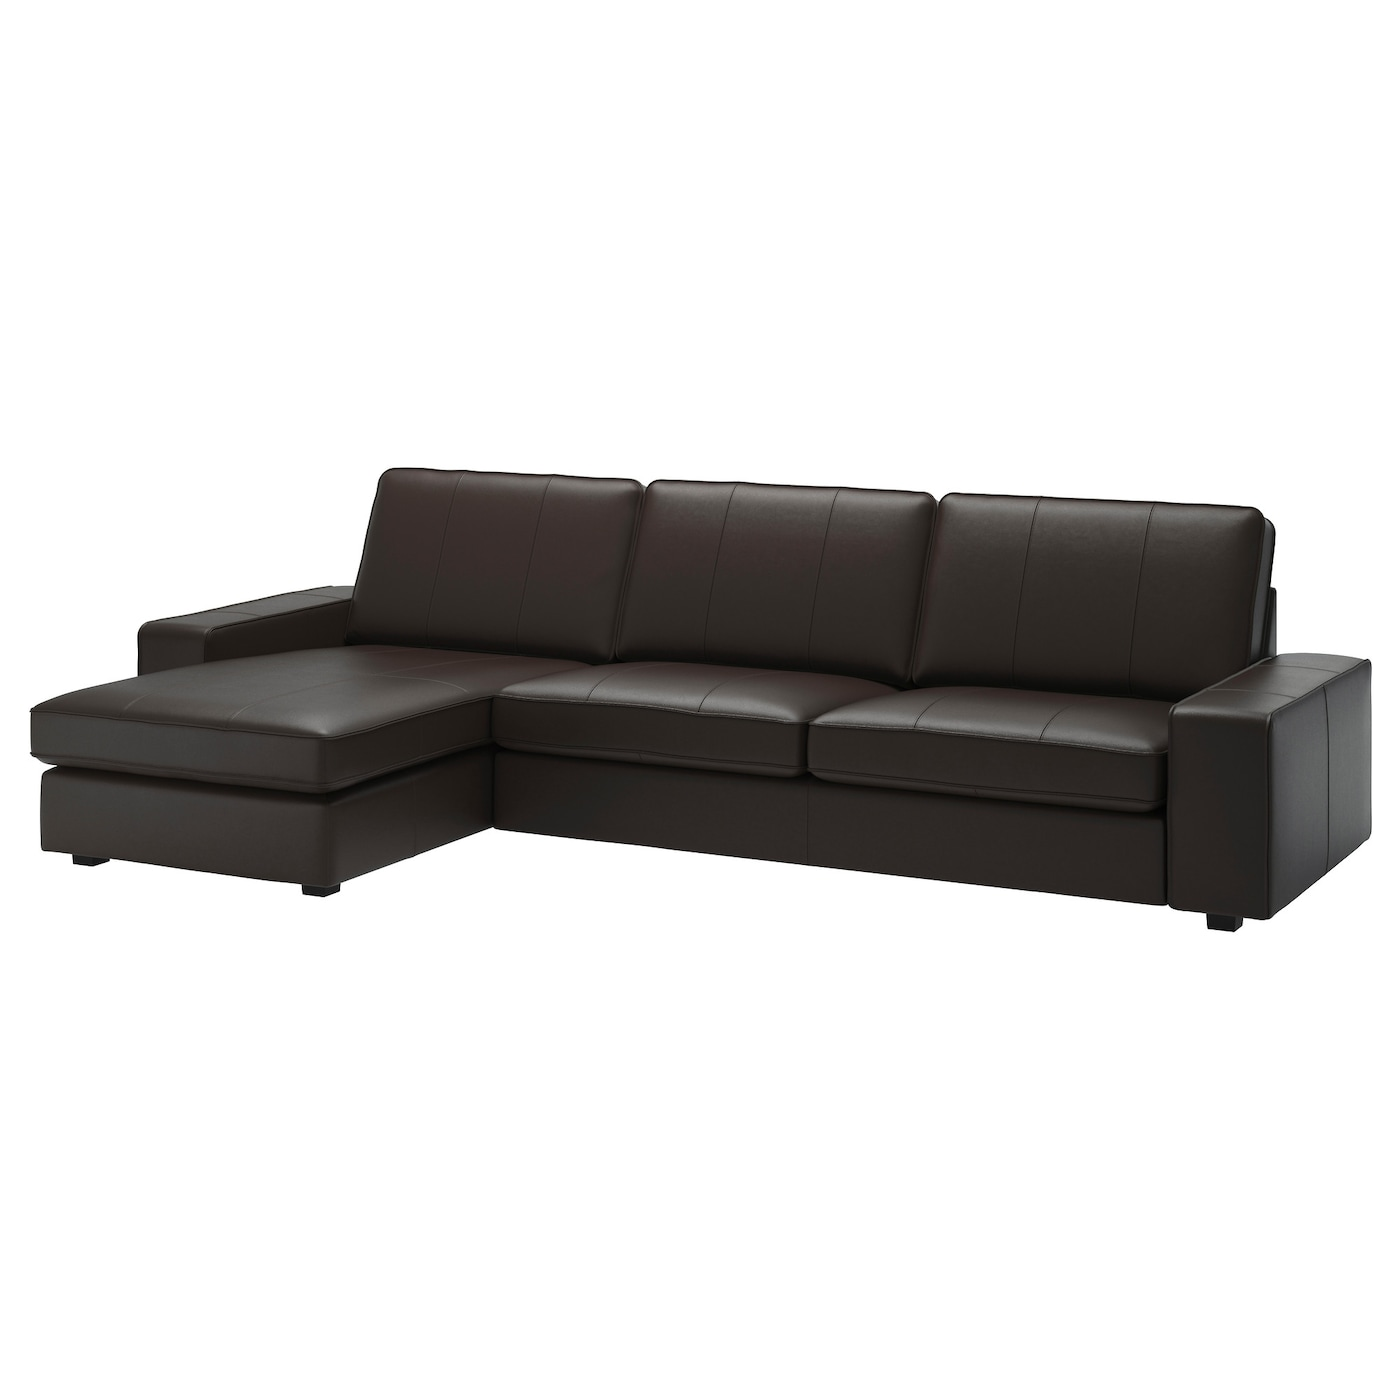 Kivik 4 seat sofa with chaise longue grann bomstad dark for Brown chaise longue